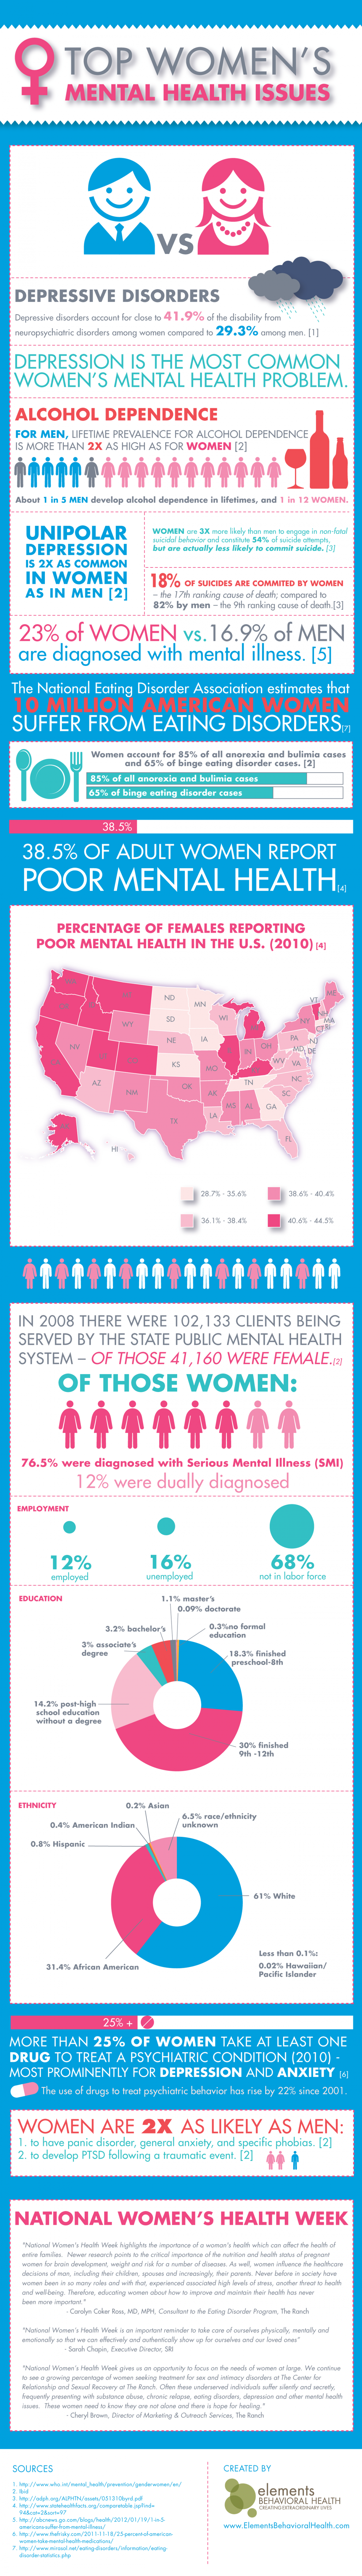 Women's Mental Health Infographic